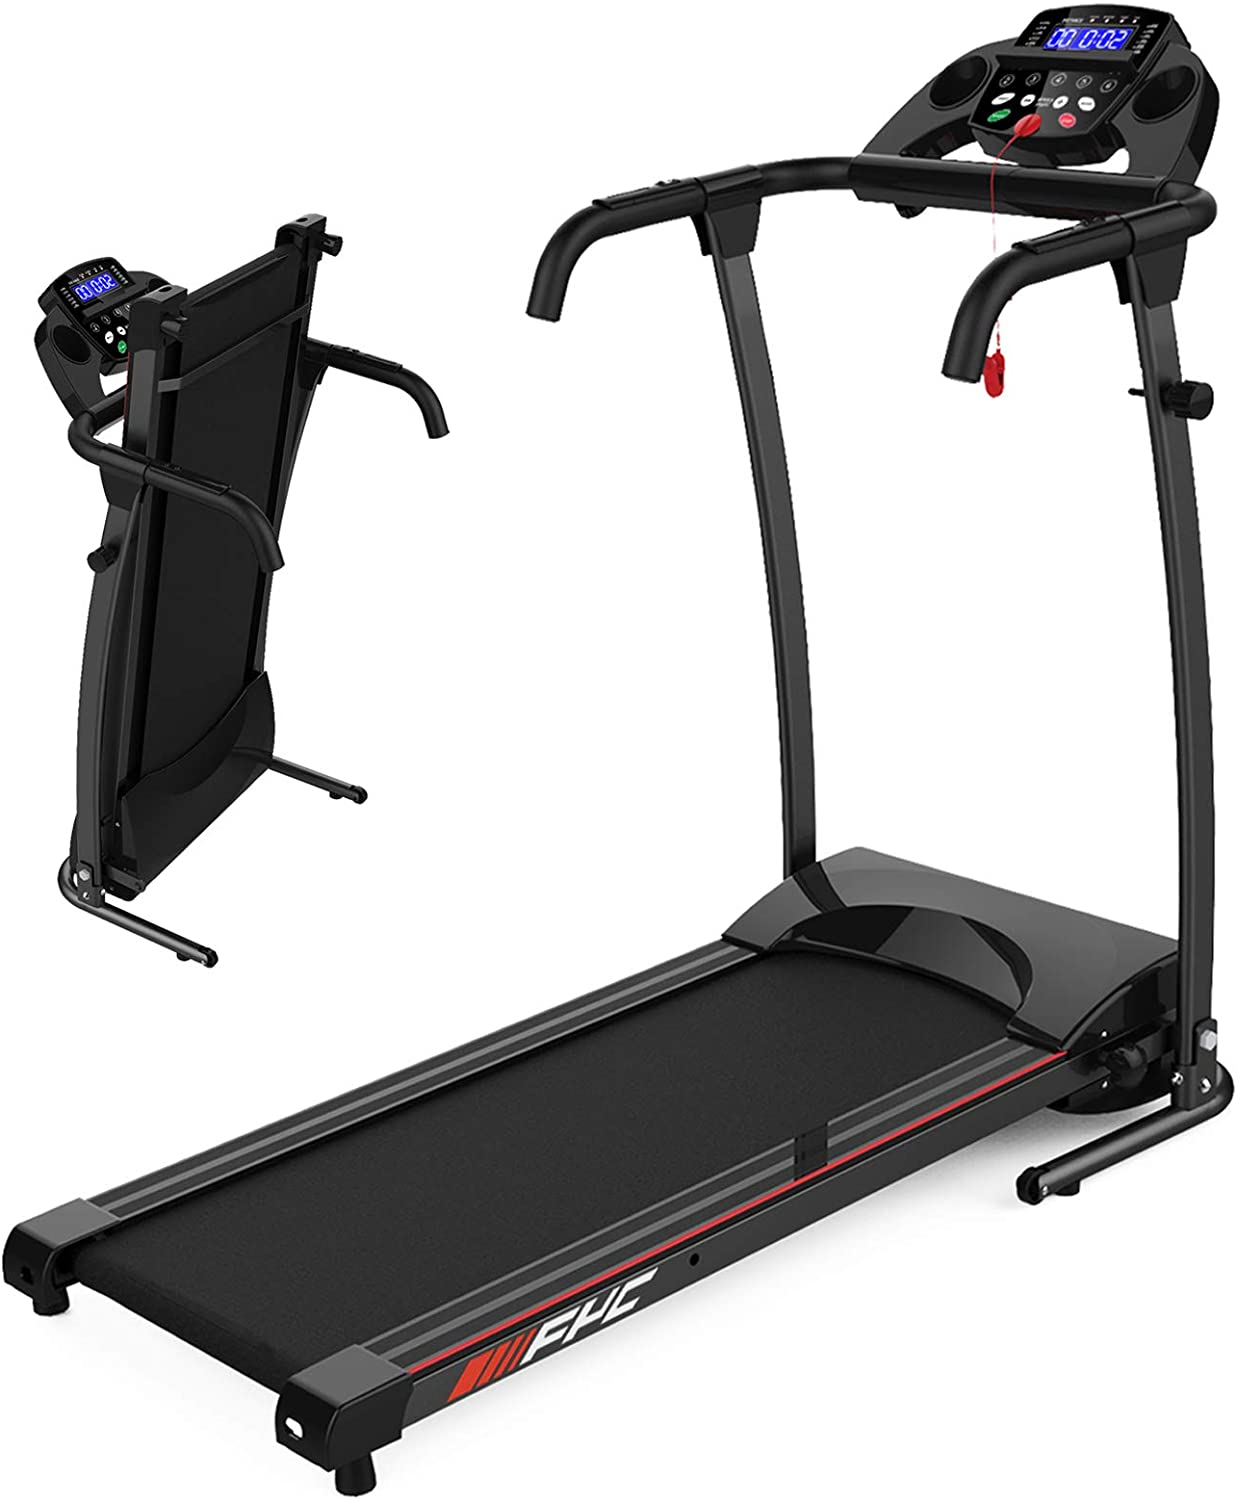 FYC Folding Treadmill for Home Portable Electric Treadmill Running Exercise Machine Compact Treadmill Foldable for Home Gym Fitness Workout Jogging Walking (JK107)